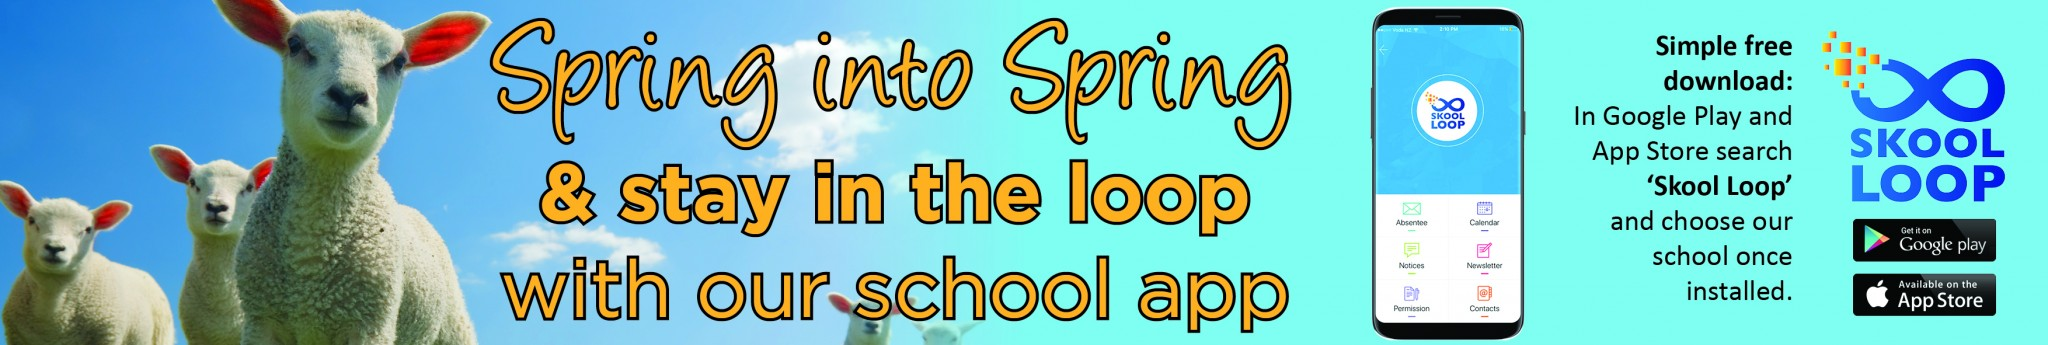 Skool Loop Spring